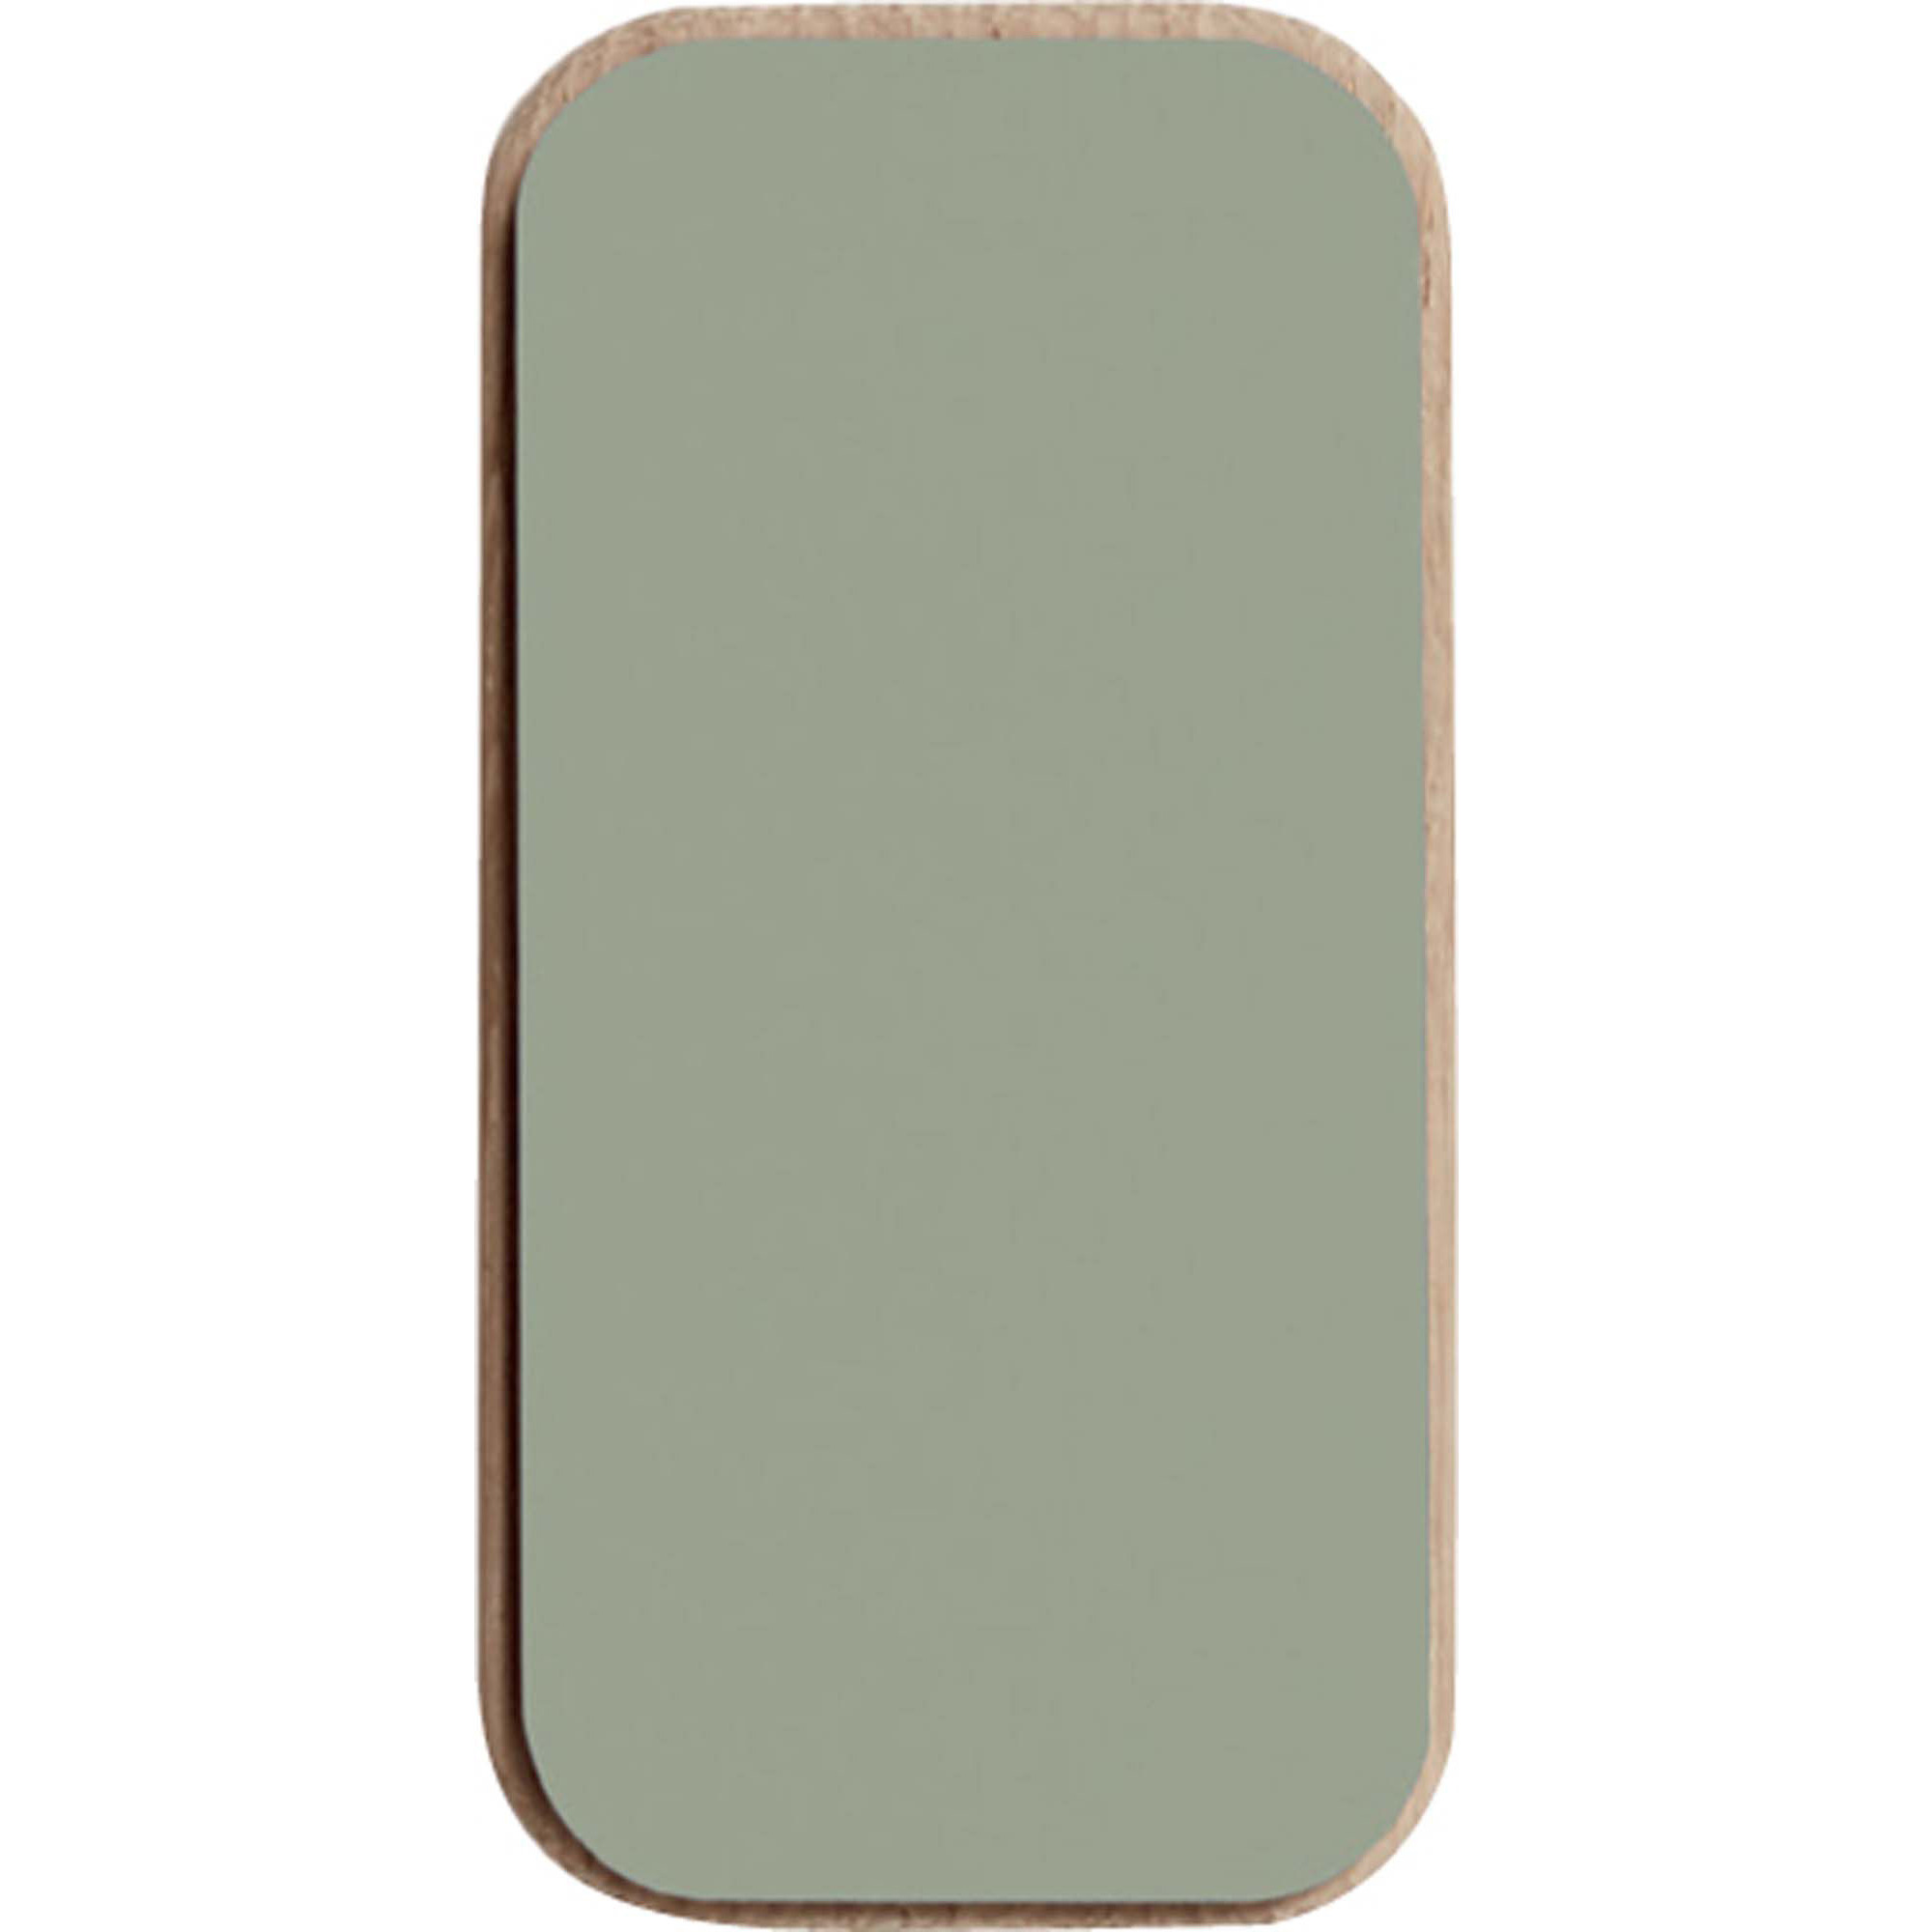 Bilde av Andersen Furniture Create Me Lokk 6 X 12 Cm Ocean Grey